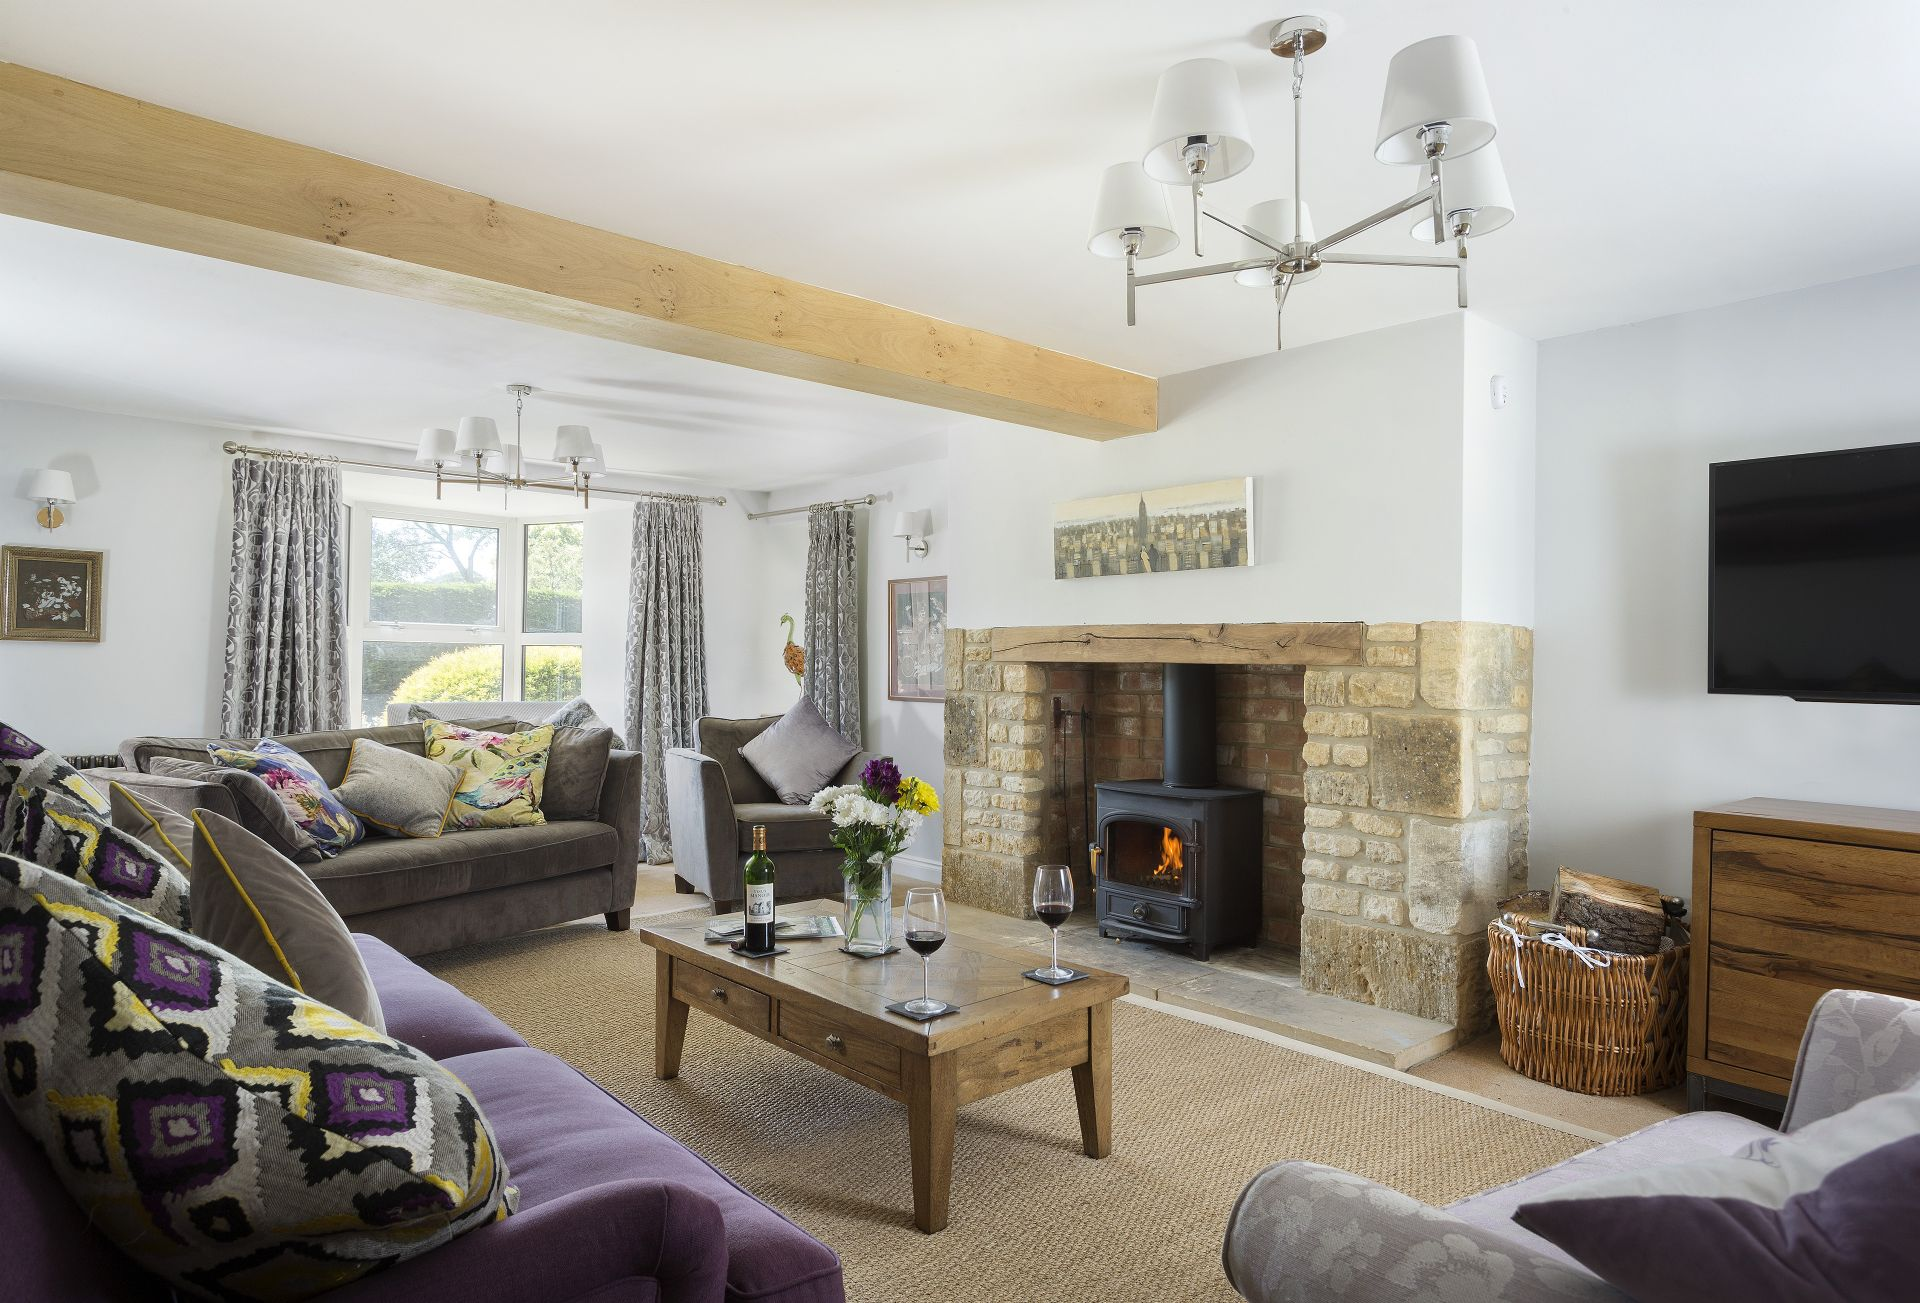 Millstone Cottage is located in Bourton-on-the-Water